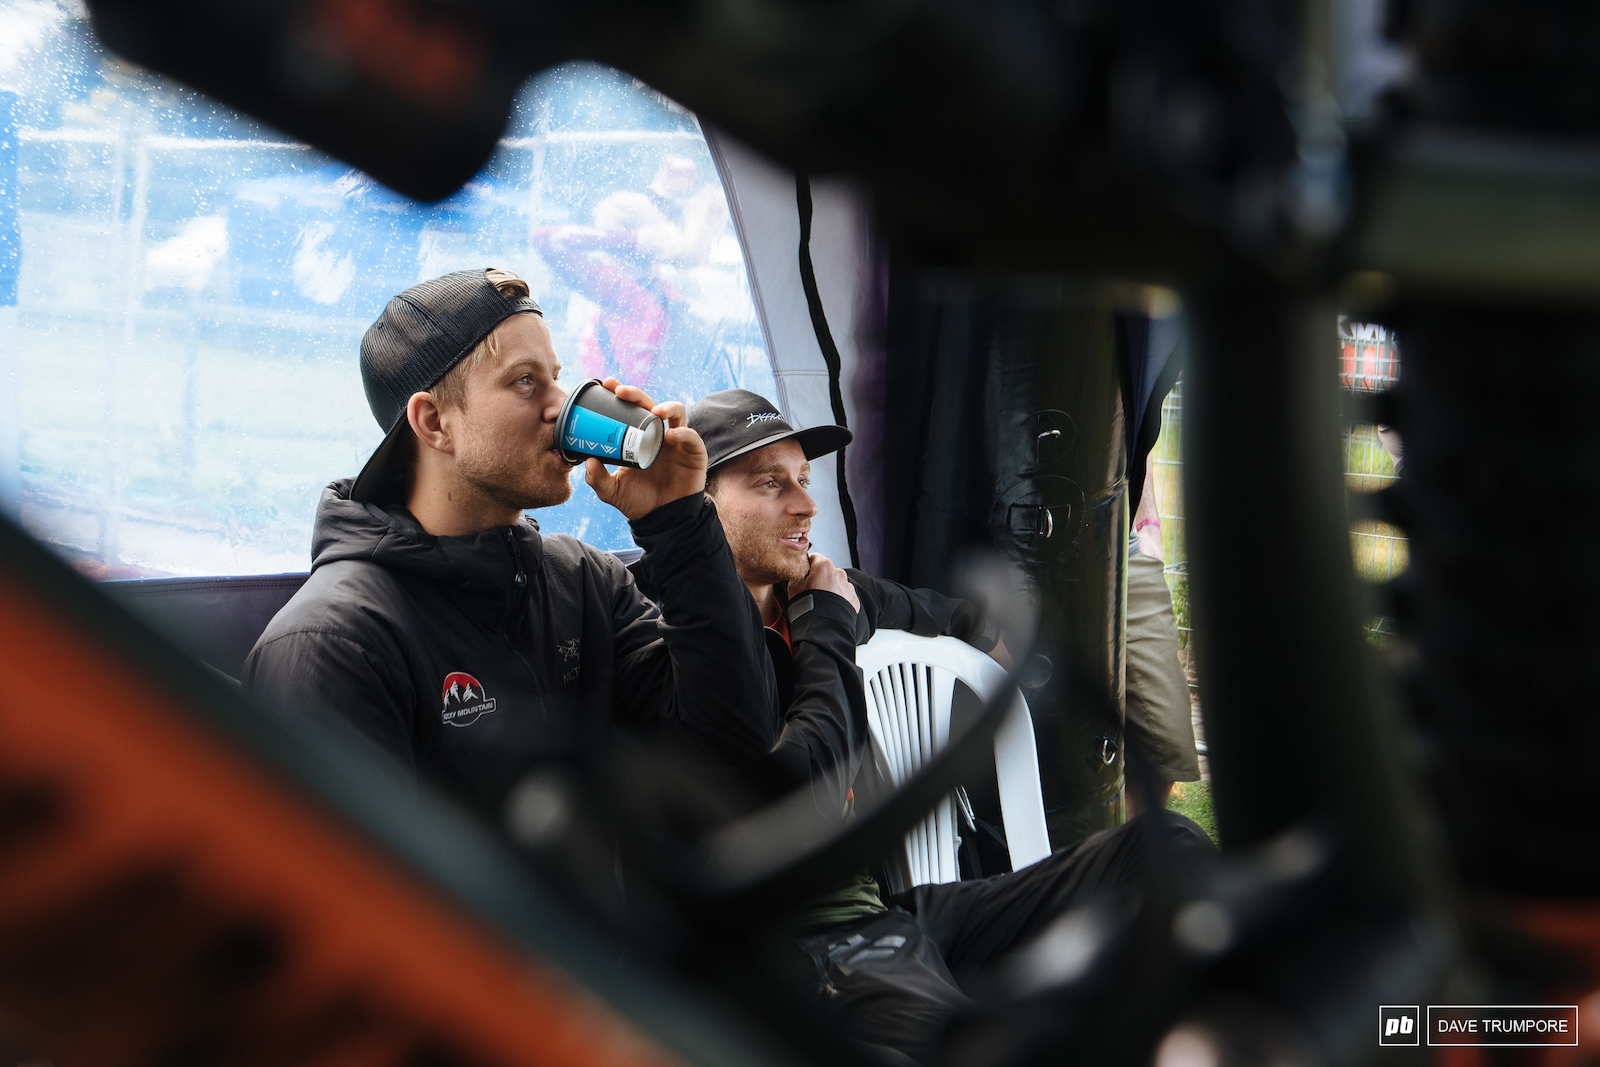 Coffee and chill for the boys in the Rocky pits to start the day.